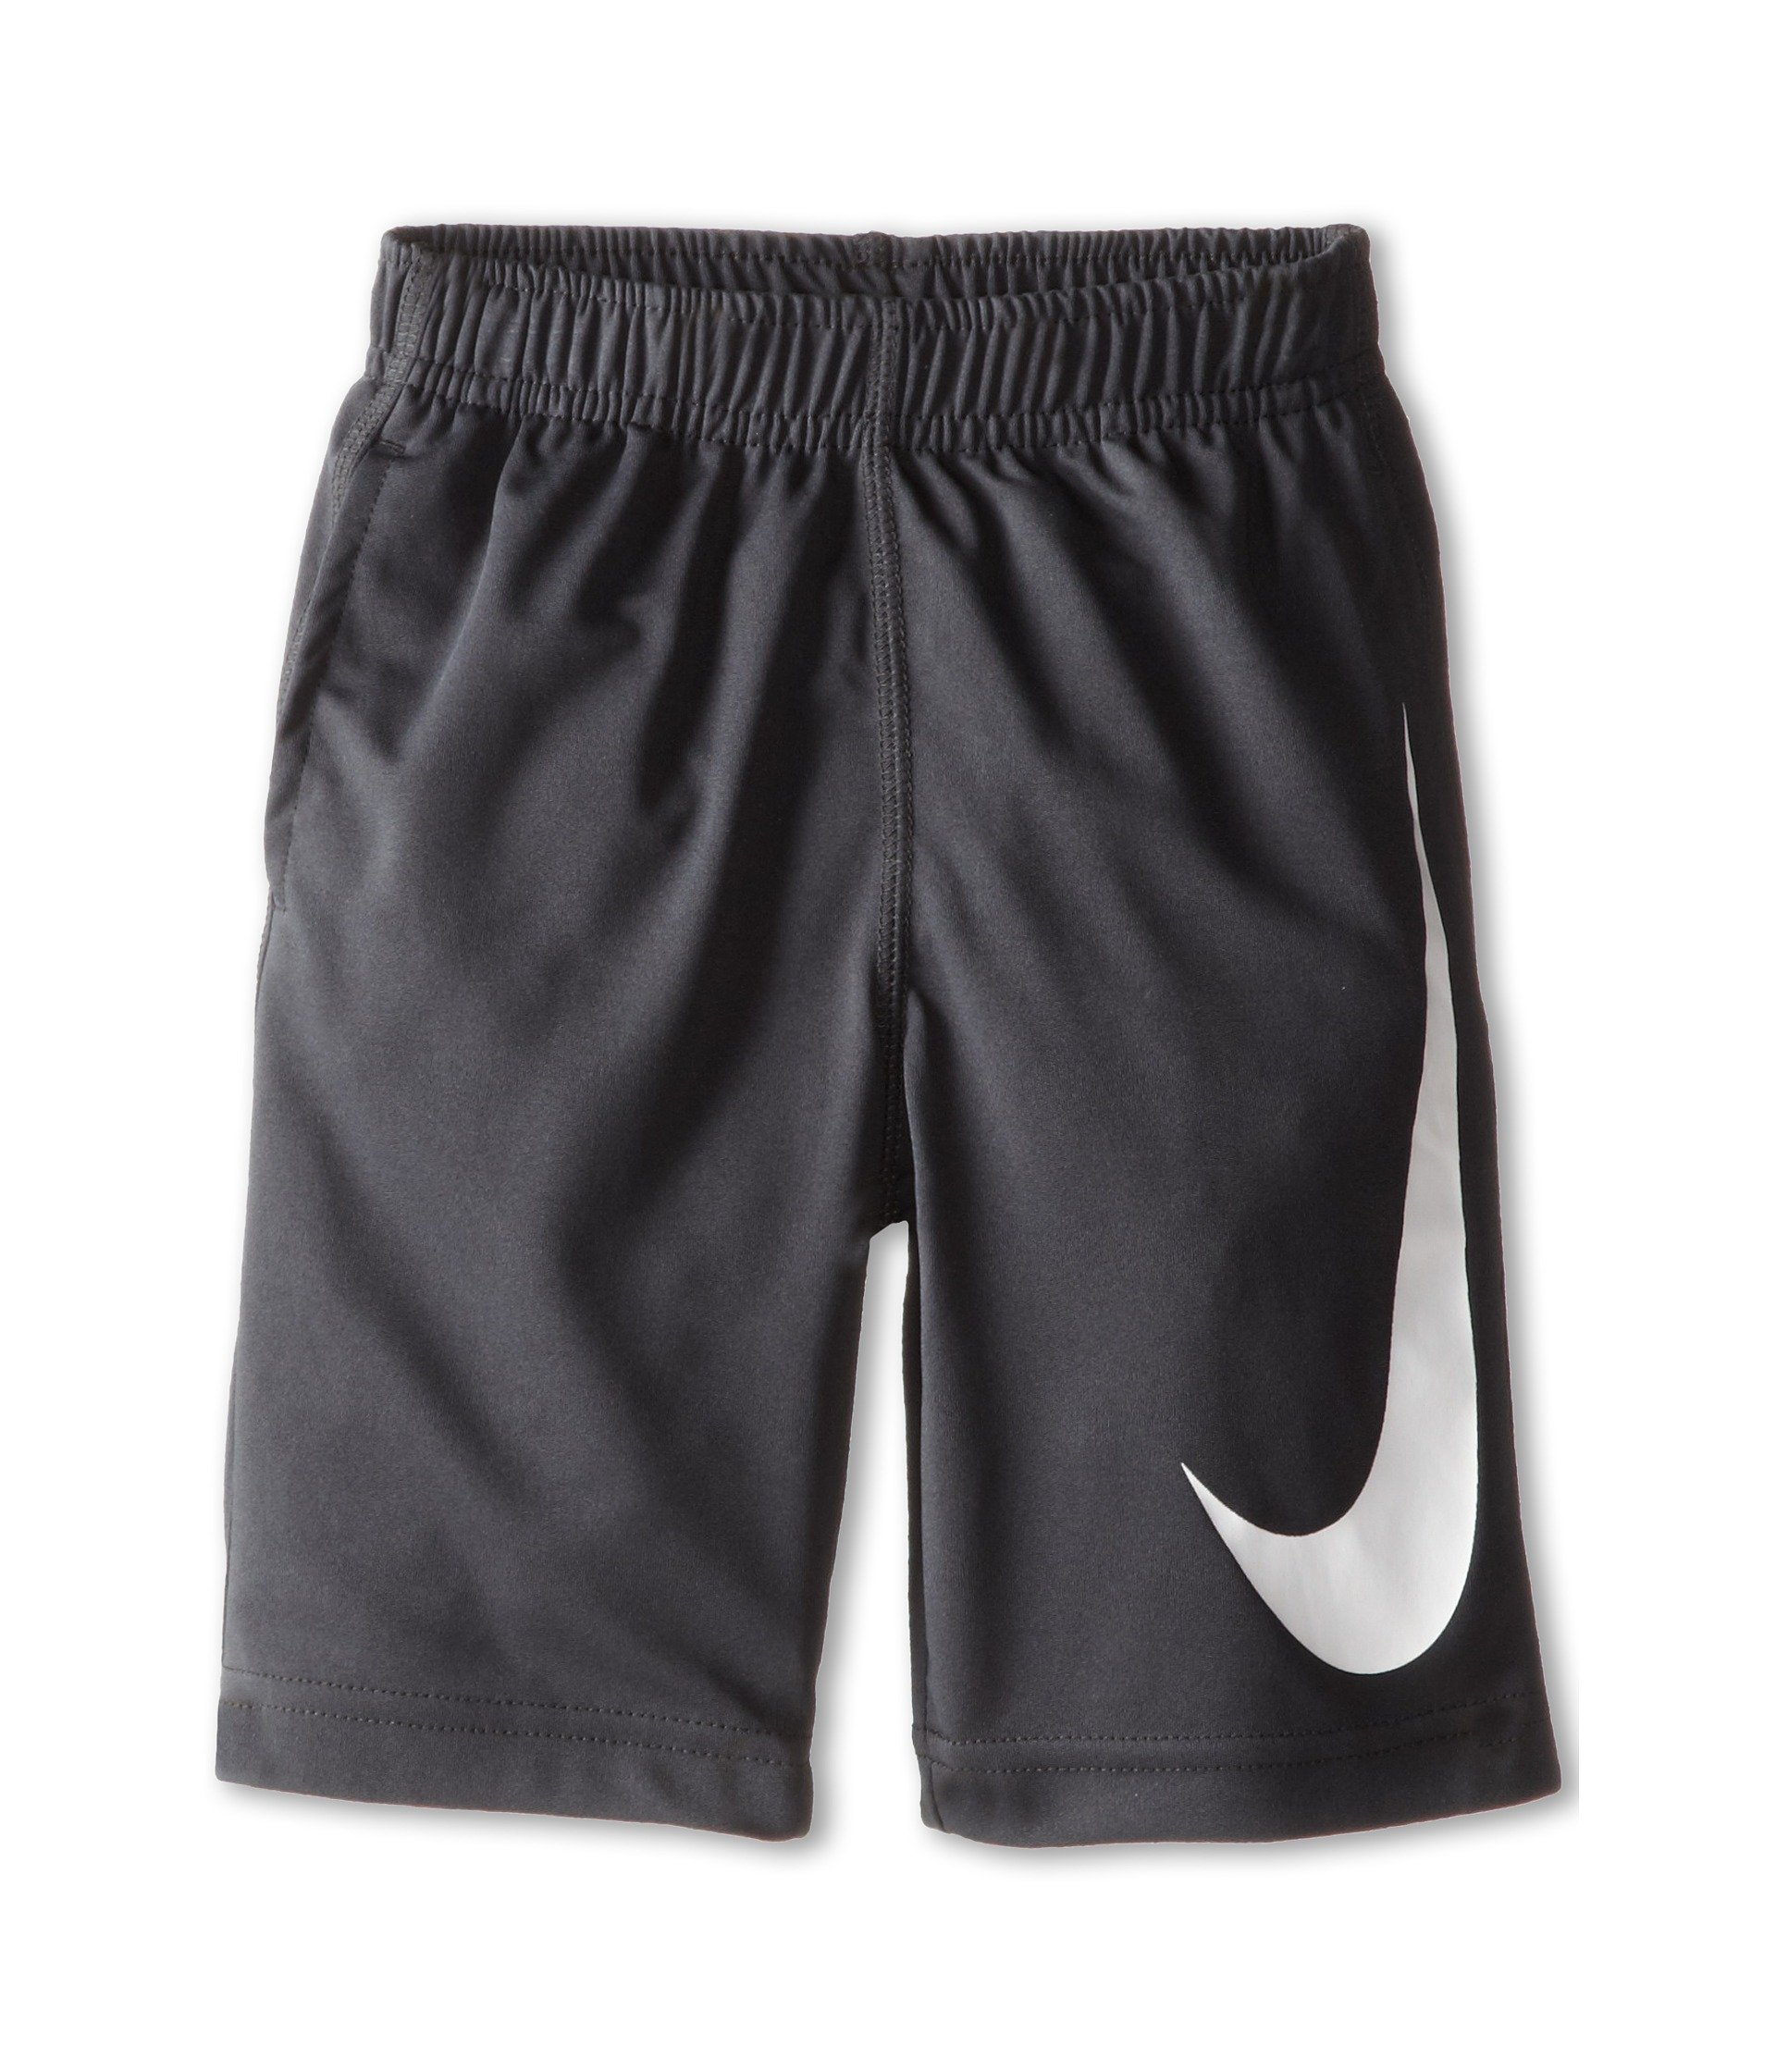 Nike Kids Boys' Performance Swoosh Shorts (Little Kids), Anthracite, 6 by Nike